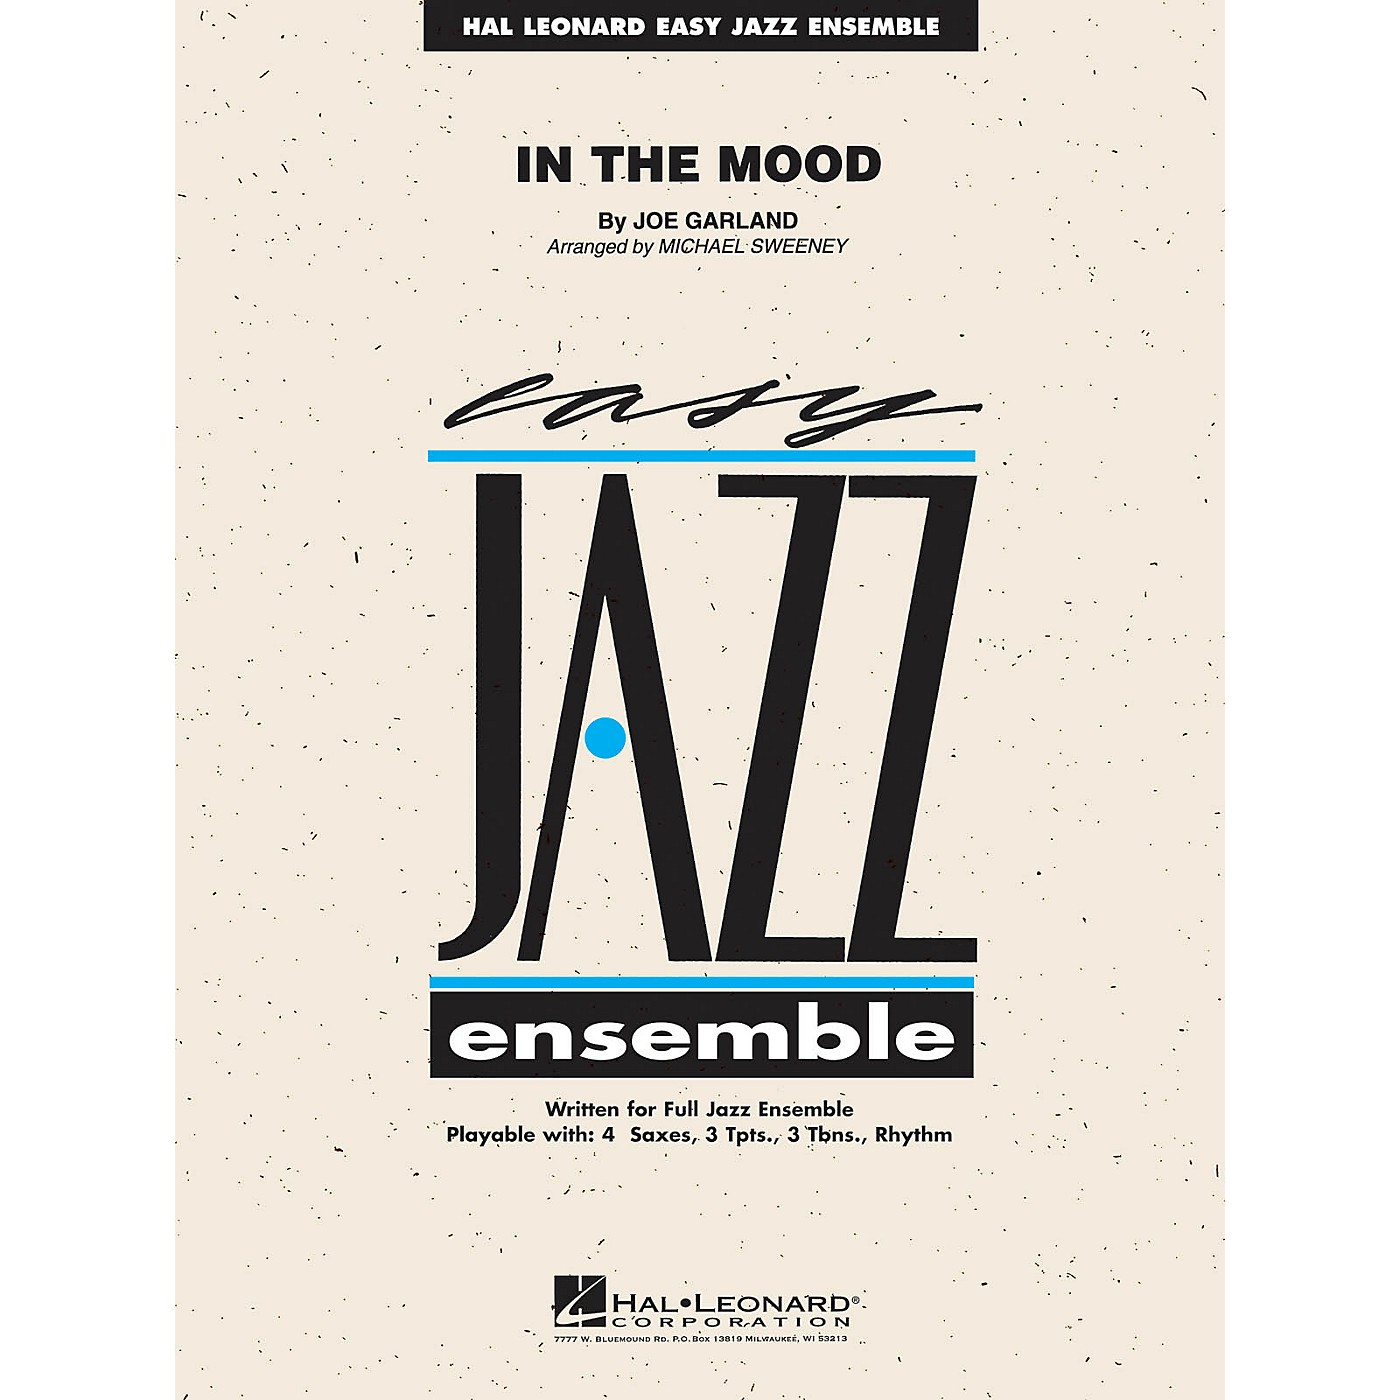 Hal Leonard In the Mood Jazz Band Level 2 by Glenn Miller Orchestra Arranged by Michael Sweeney thumbnail